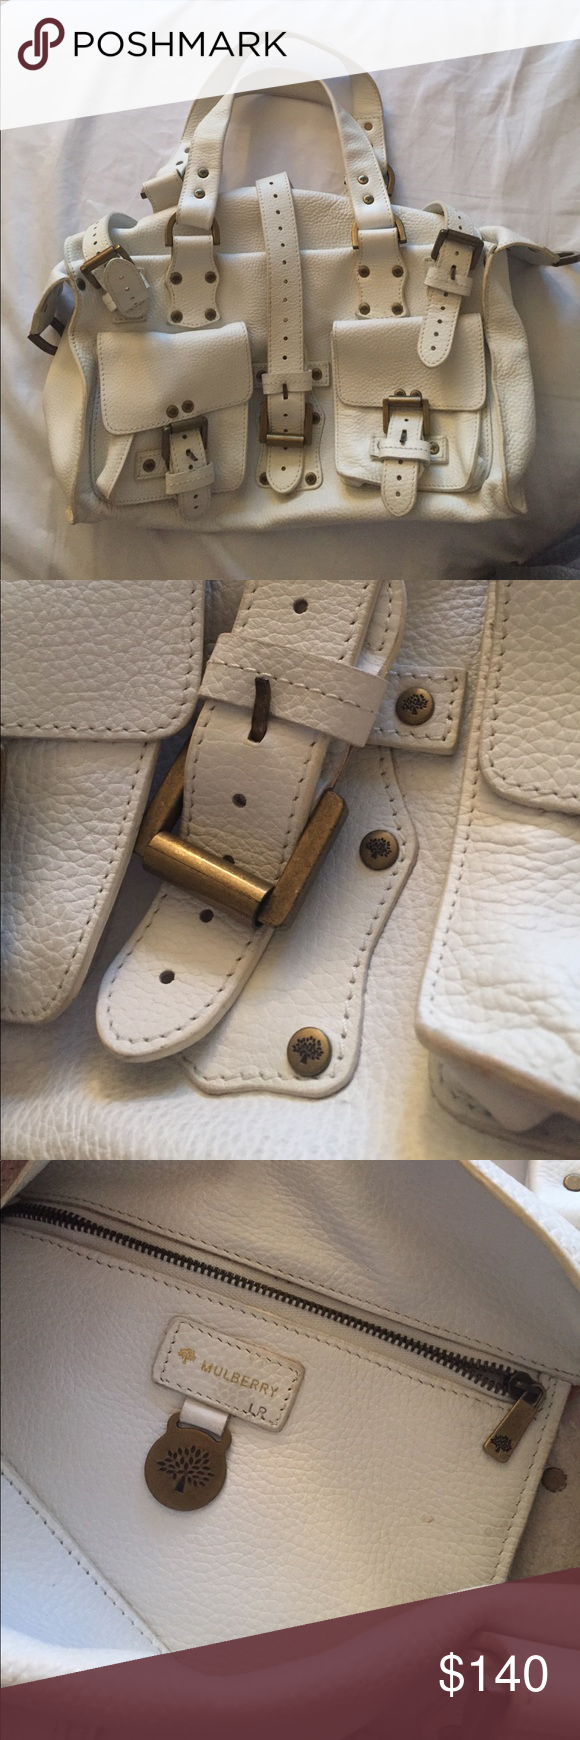 Mulberry roxanne bag in white Gently used Mulberry Roxanne bag in white leather Mulberry Bags Totes #mulberrybag Mulberry roxanne bag in white Gently used Mulberry Roxanne bag in white leather Mulberry Bags Totes #mulberrybag